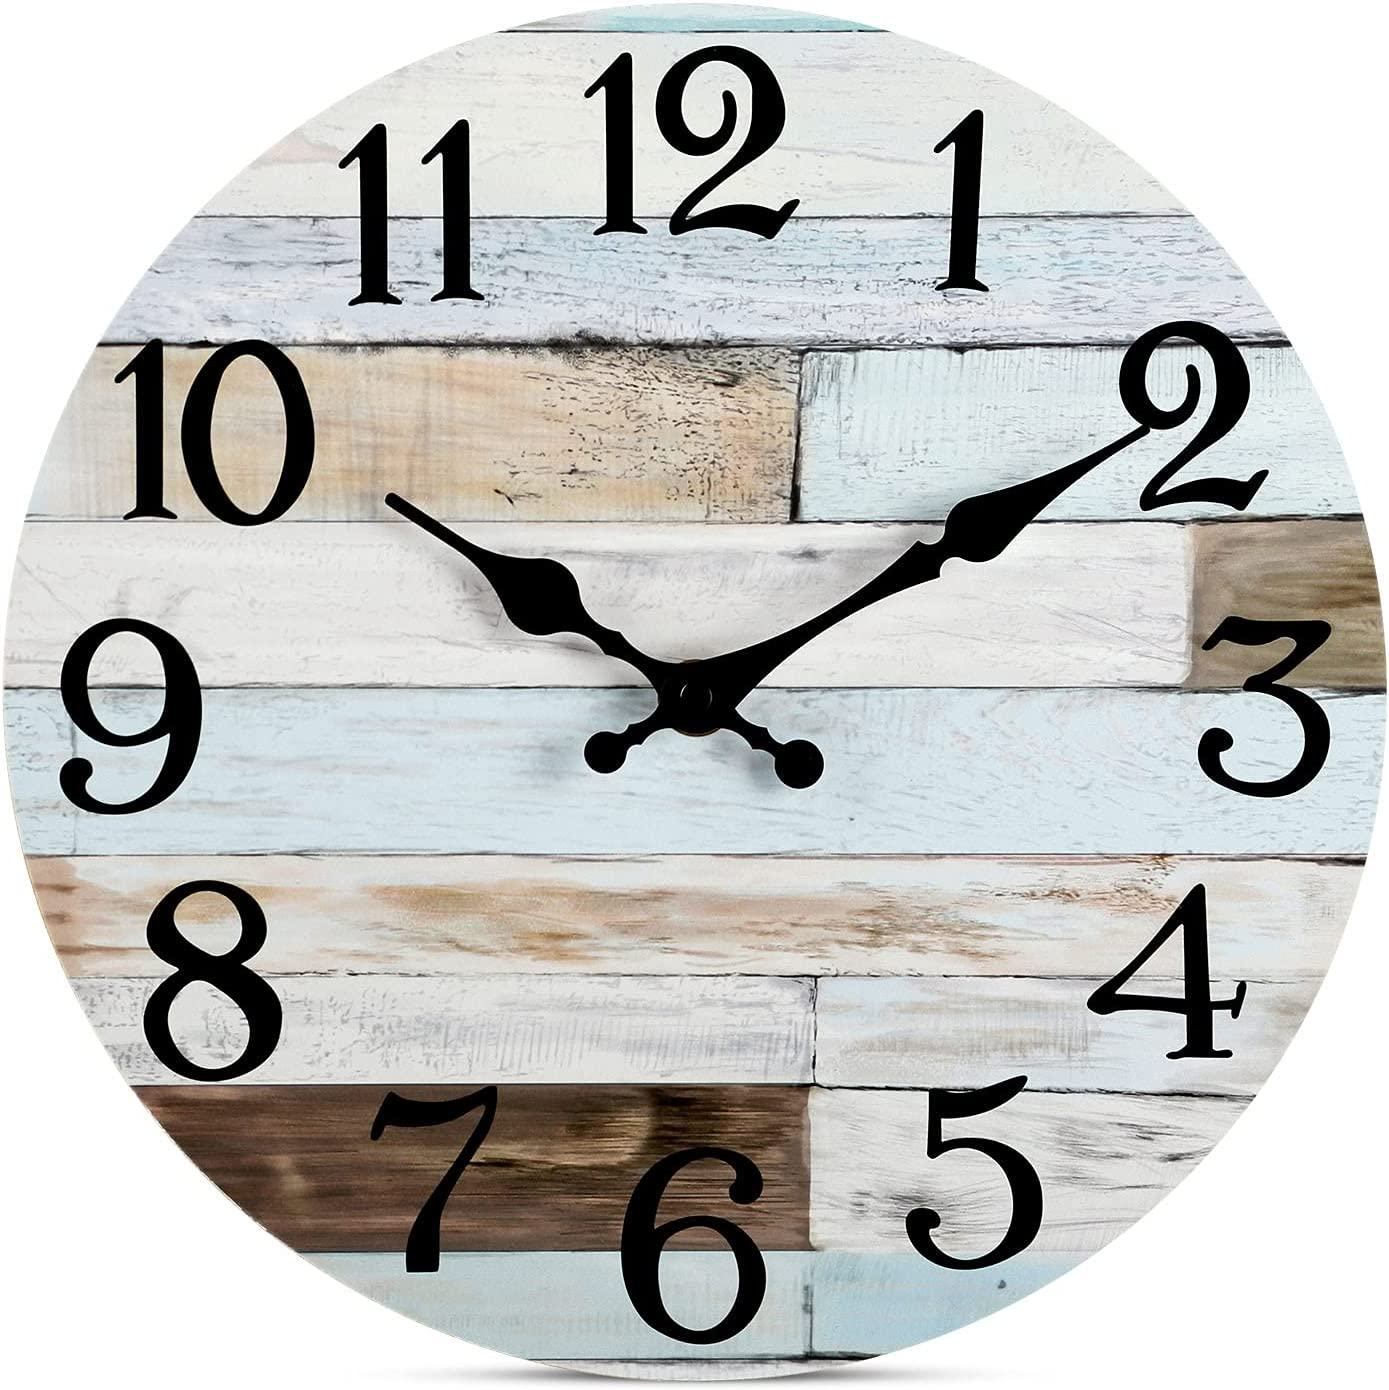 Amazon Com Wall Clock 10 Inch Silent Non Ticking Wooden Wall Clocks Battery Operated Country Retro Rustic Style Decorative For Living Room Kitchen Home Bathroom Bedroom Kitchen Dining